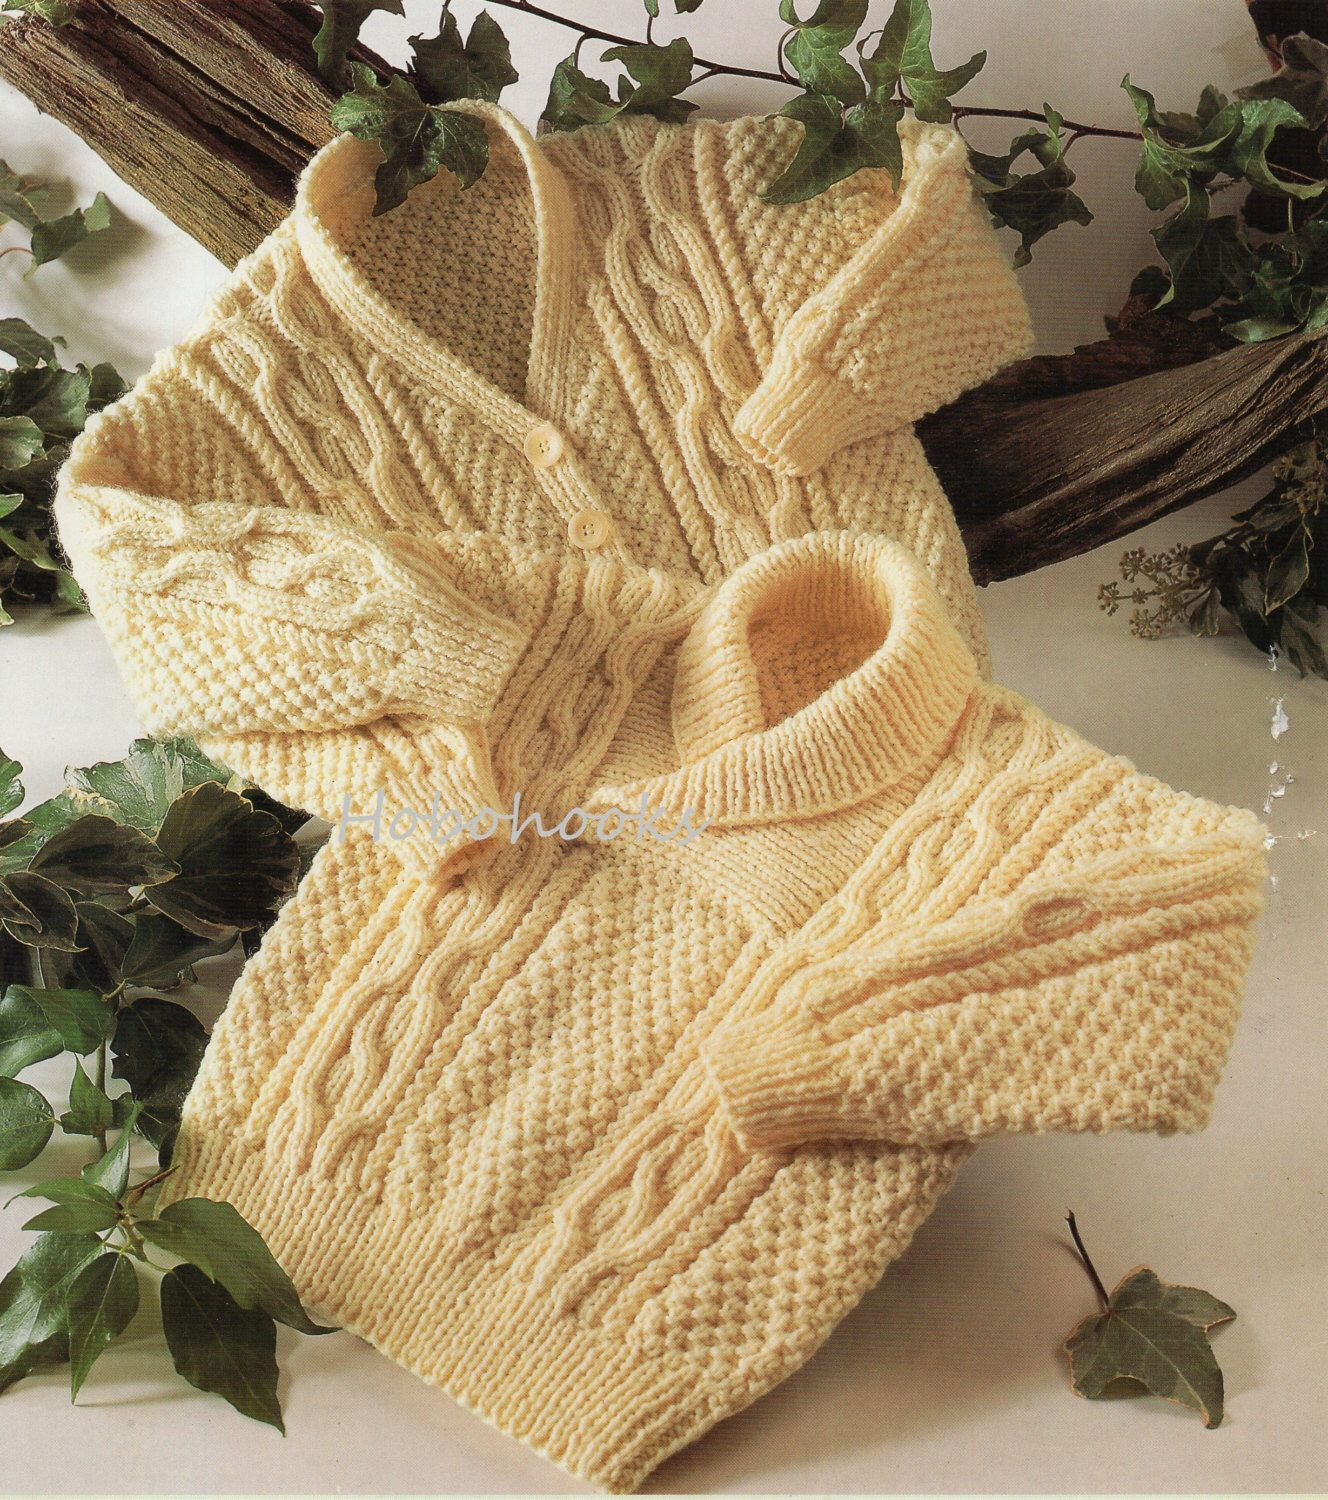 Knitting Sweater Designs For Baby : Baby toddler childrens aran sweater cable shawl